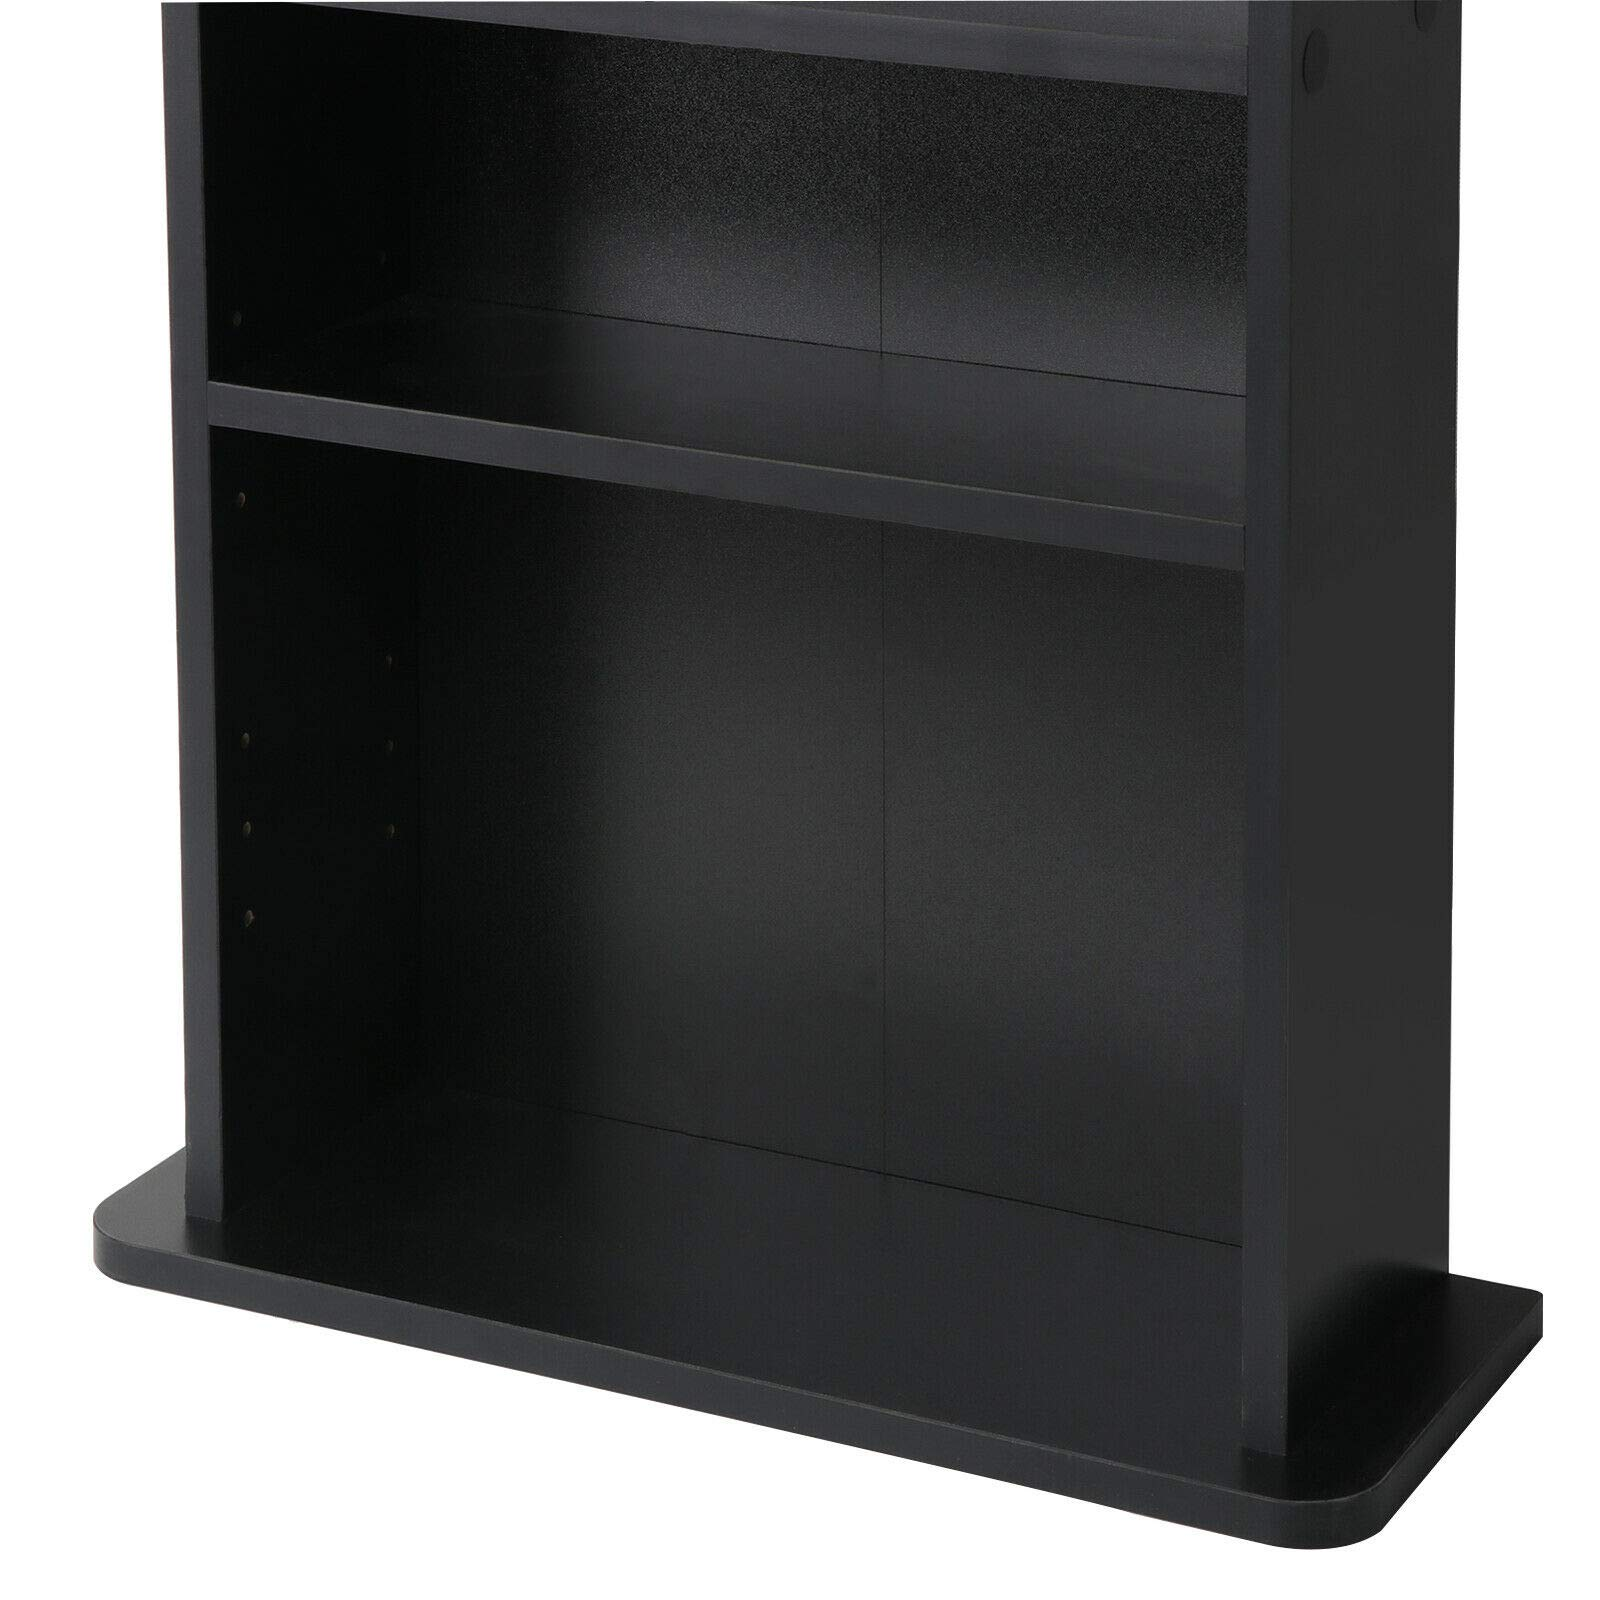 PloybeeShop Height DVD CD This Media Cabinet Storage Adjustable 5 Layers Stand Free Standing 36'' by PloybeeShop (Image #6)